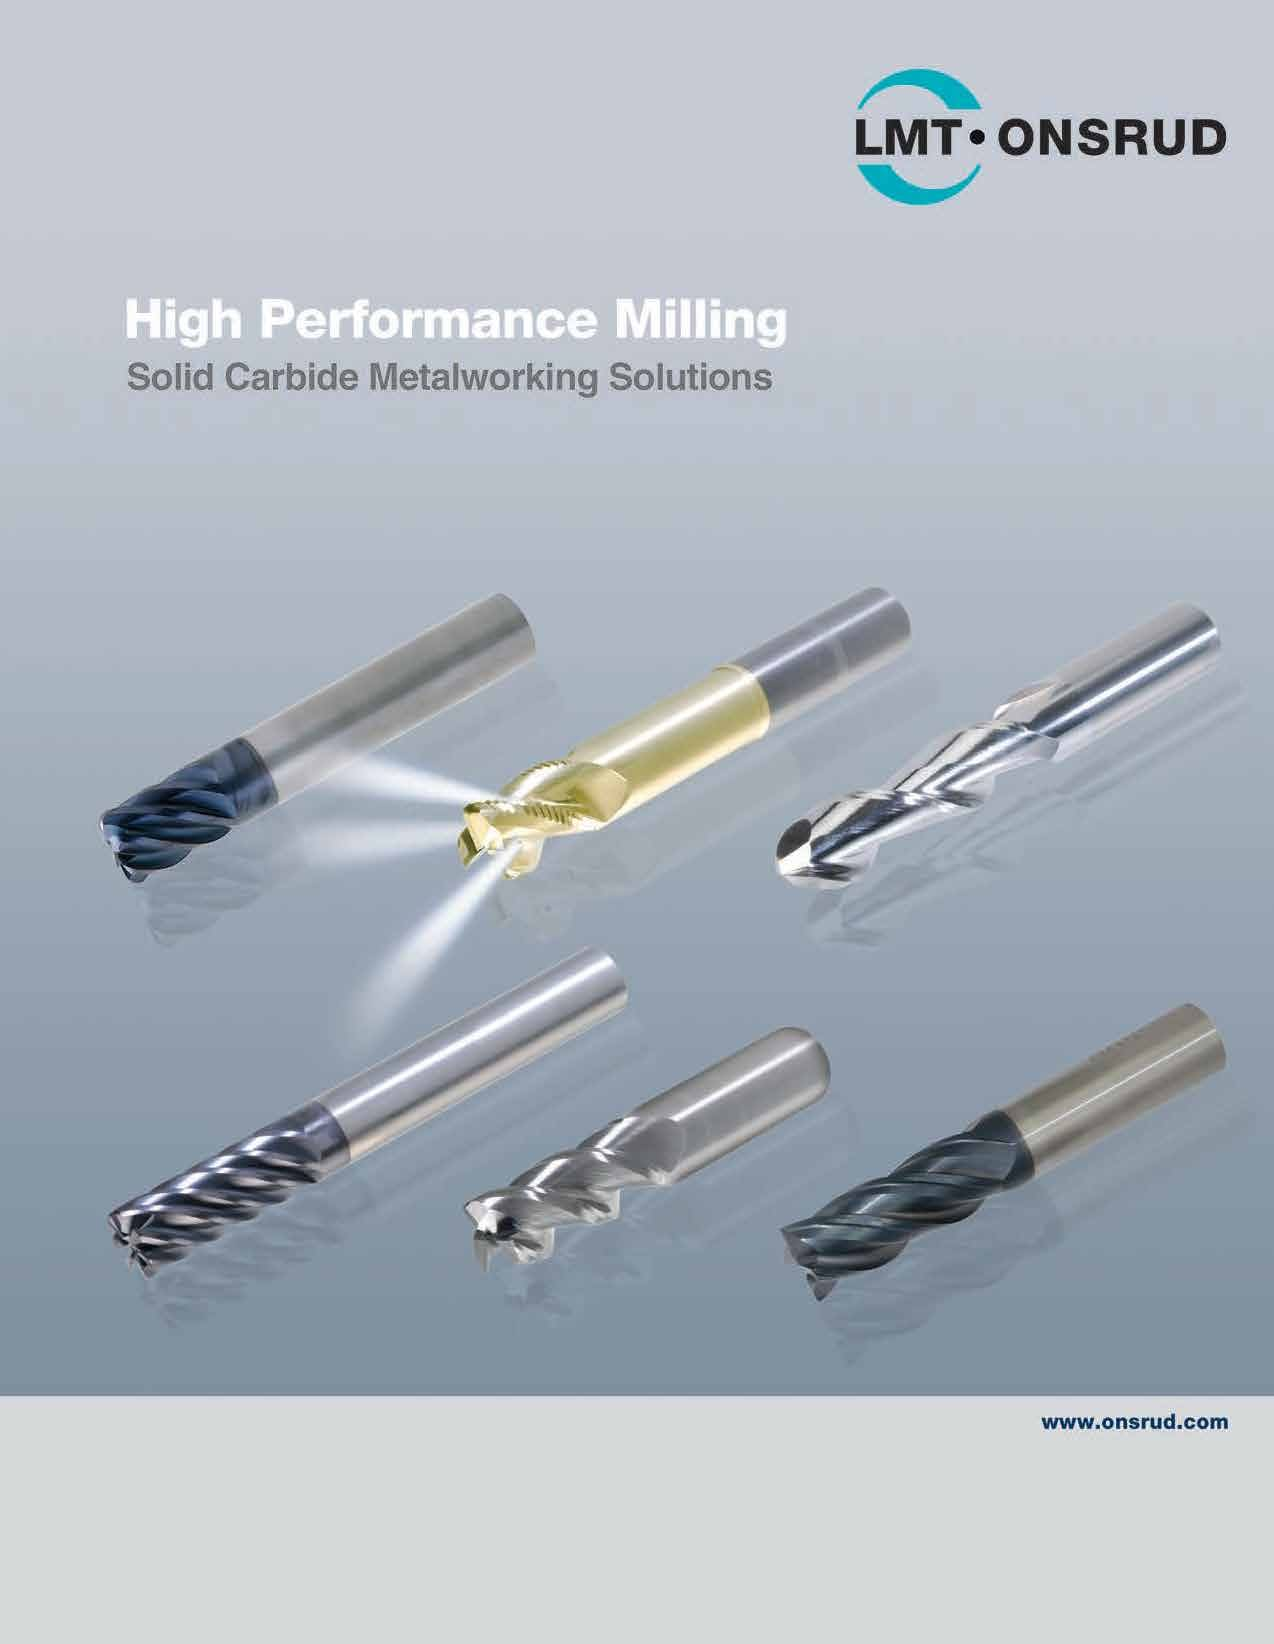 LMT Onsrud - High Performance Milling